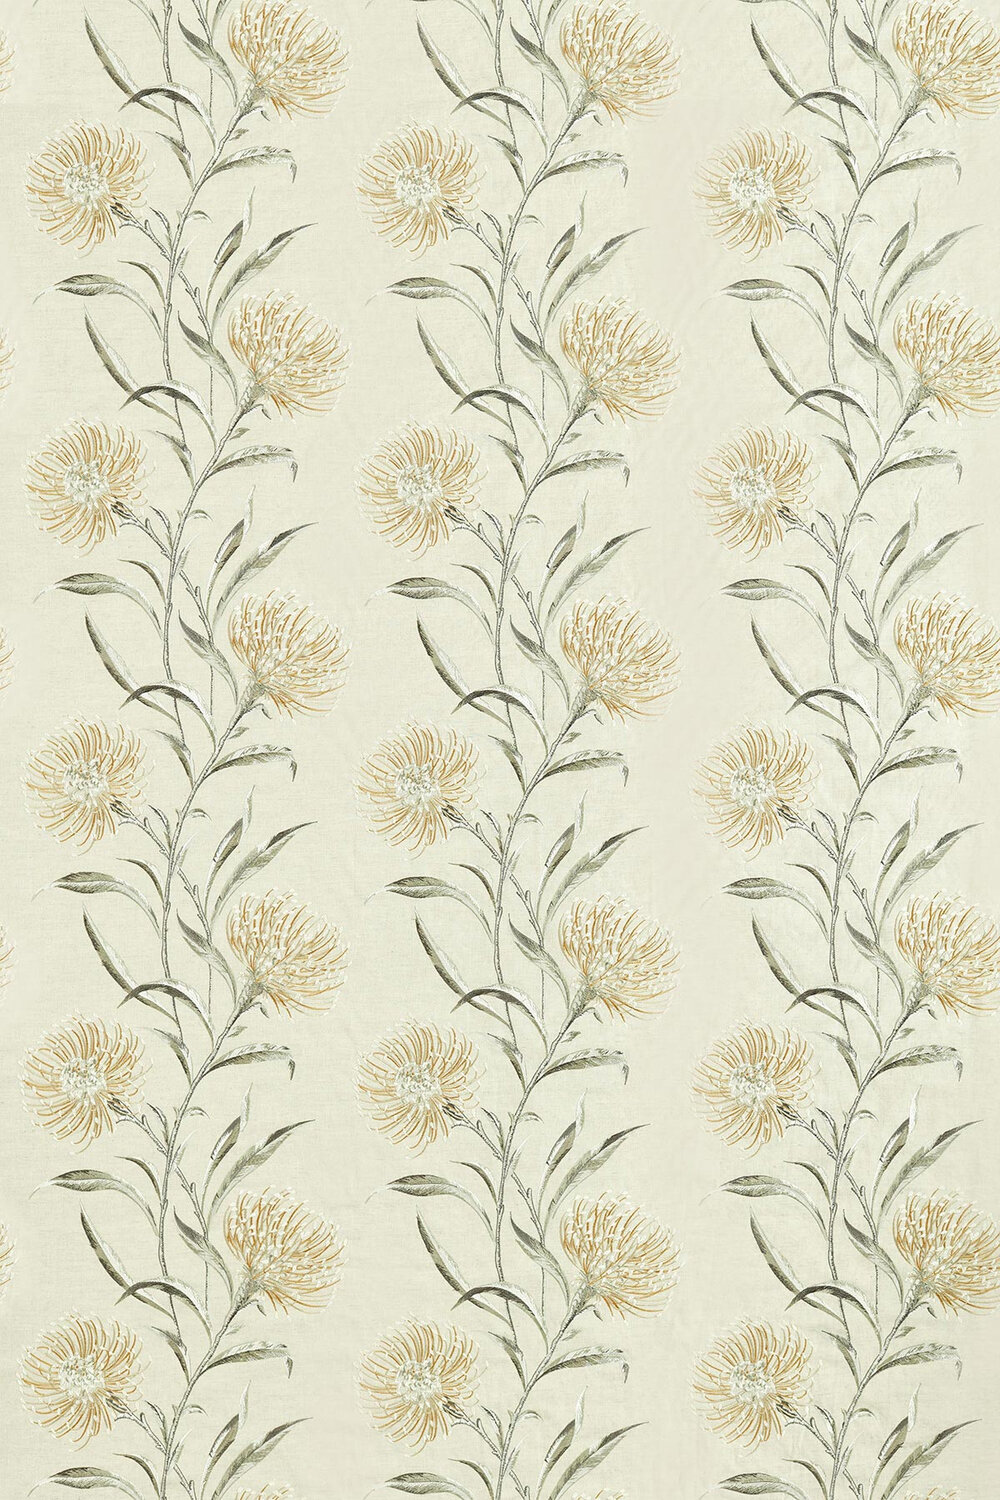 Catherinae Embroidery Fabric - Hay - by Sanderson